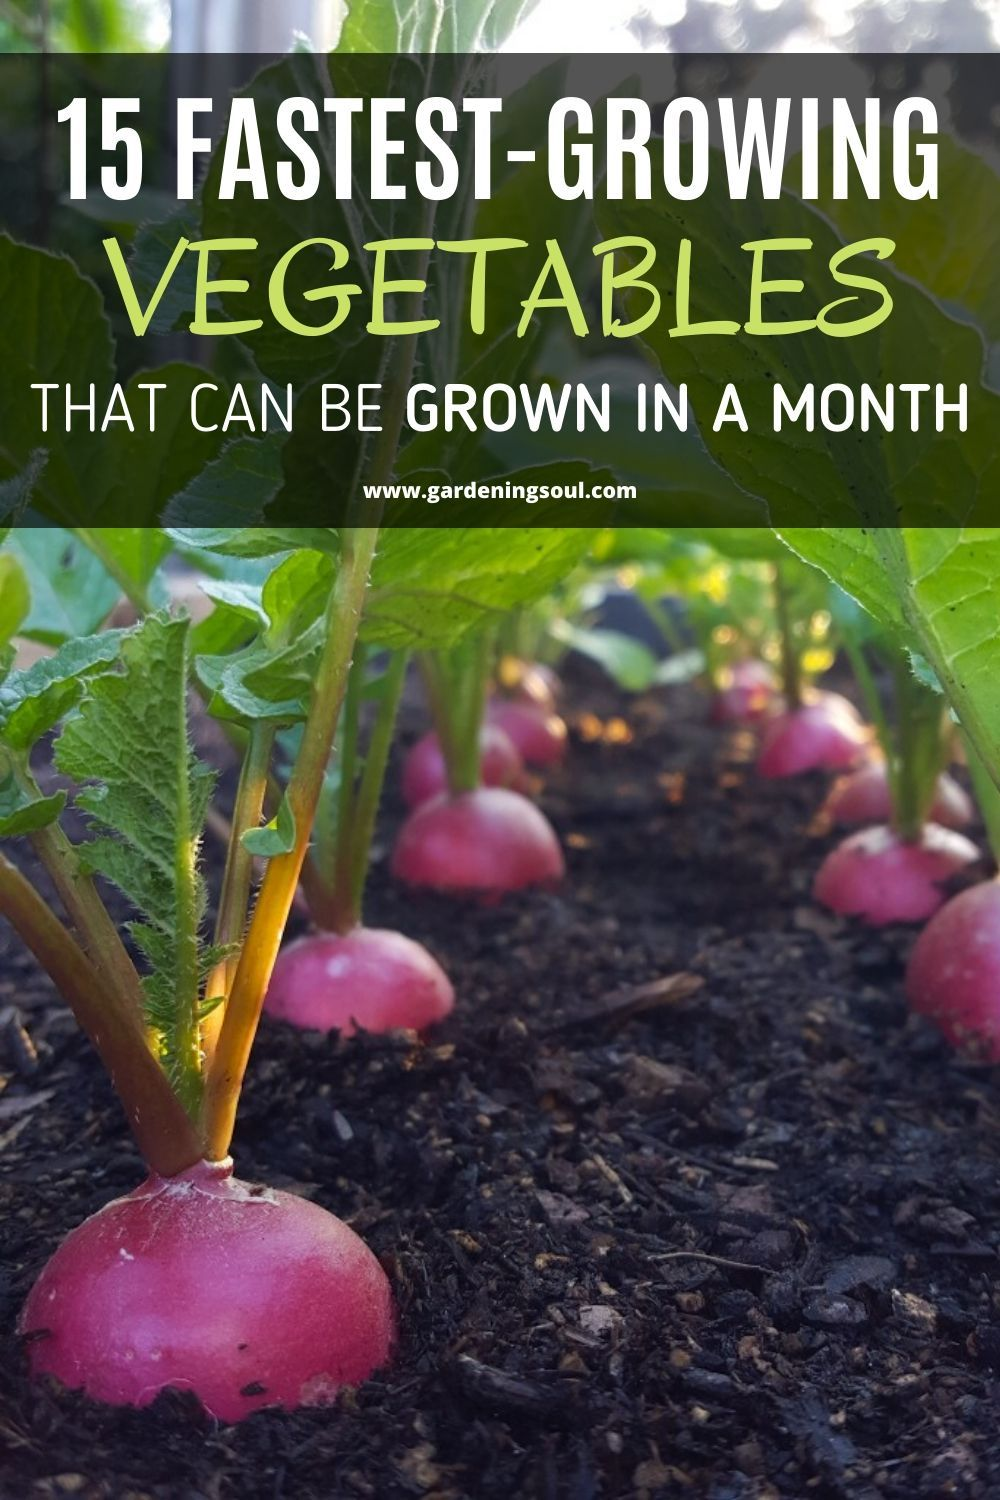 15 Fastest Growing Vegetables That Can Be Grown In A Month In 2020 Fast Growing Vegetables Fast Growing Plants Growing Vegetables